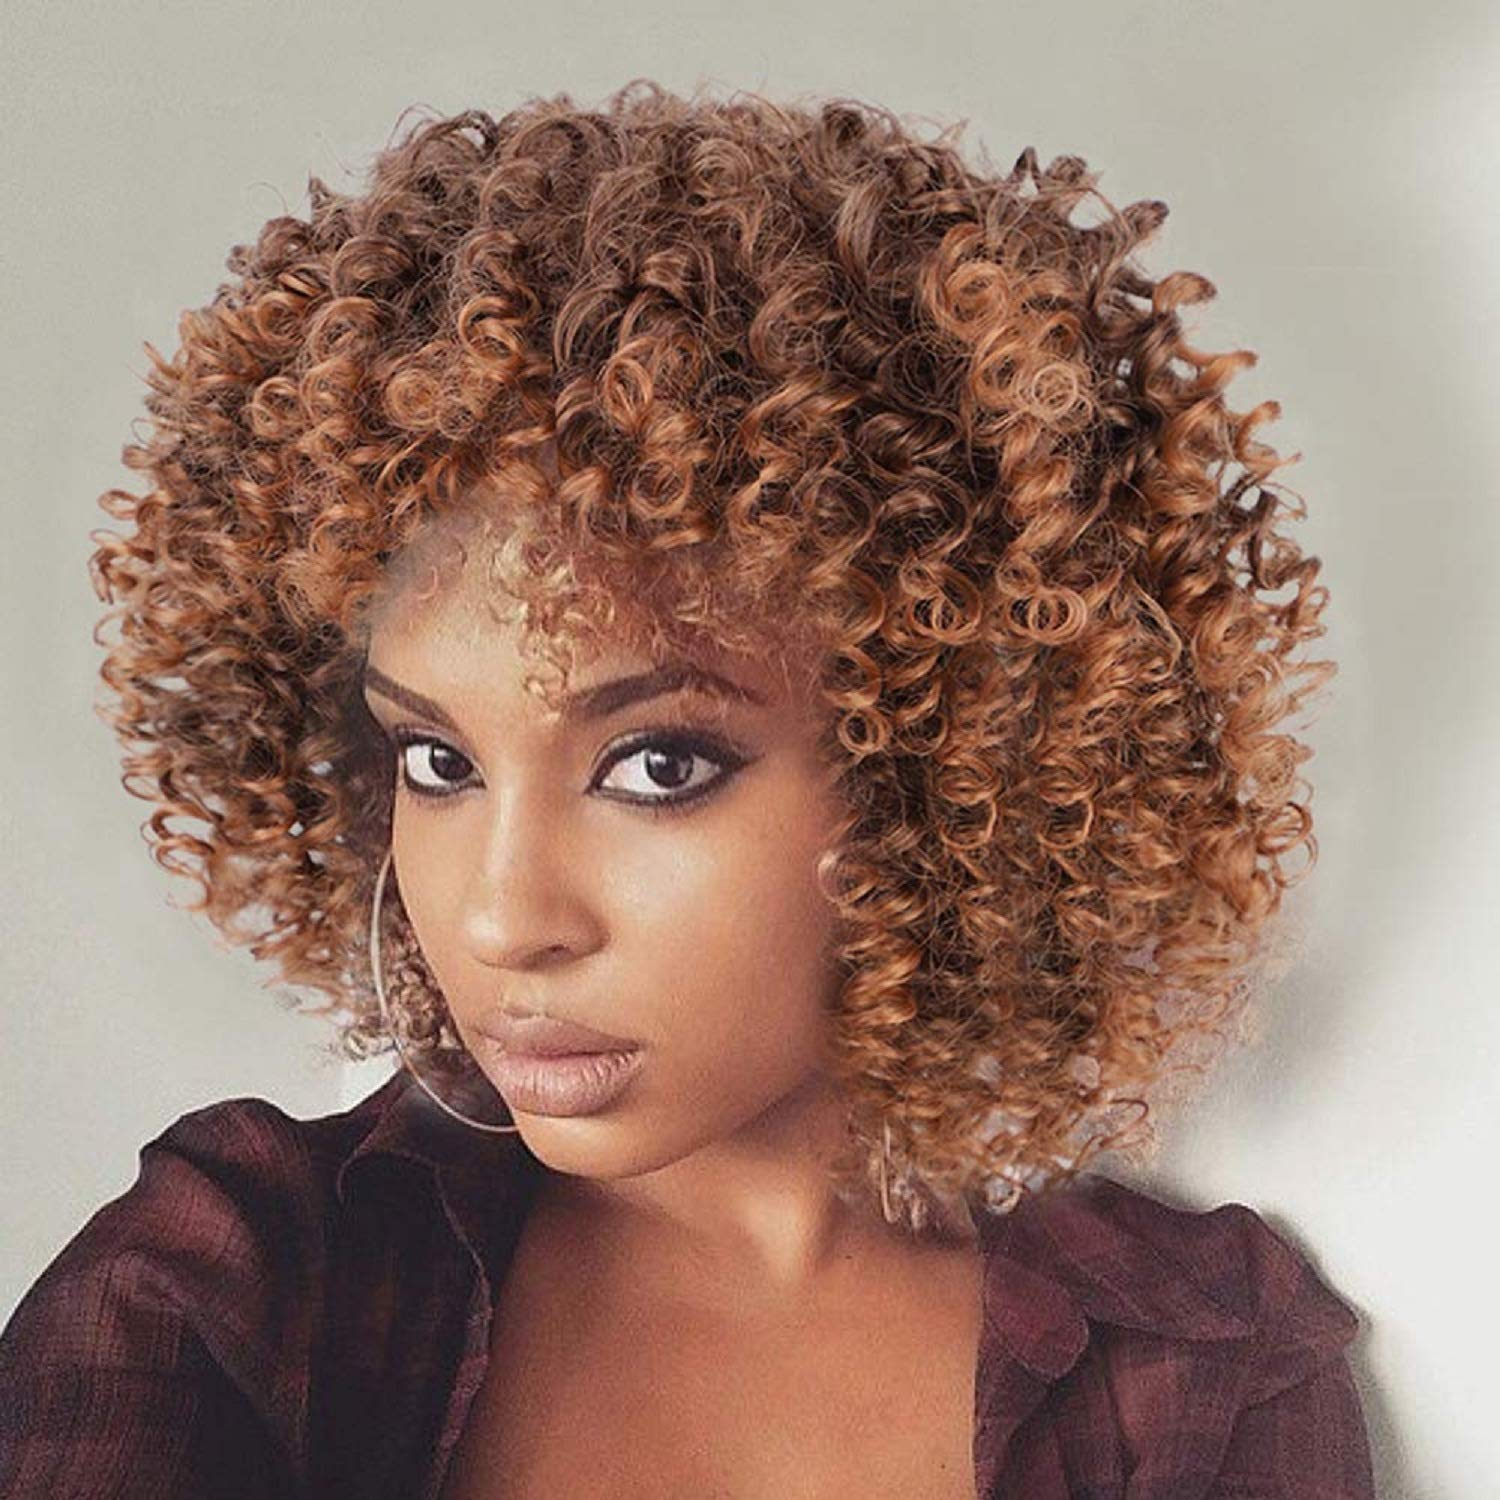 Amazon Com N T Afro Short Kinky Curly Wigs For Black Women Synthetic Hair Ombre Brown Wig Cosplay Holiday Gifts For Girls Beauty